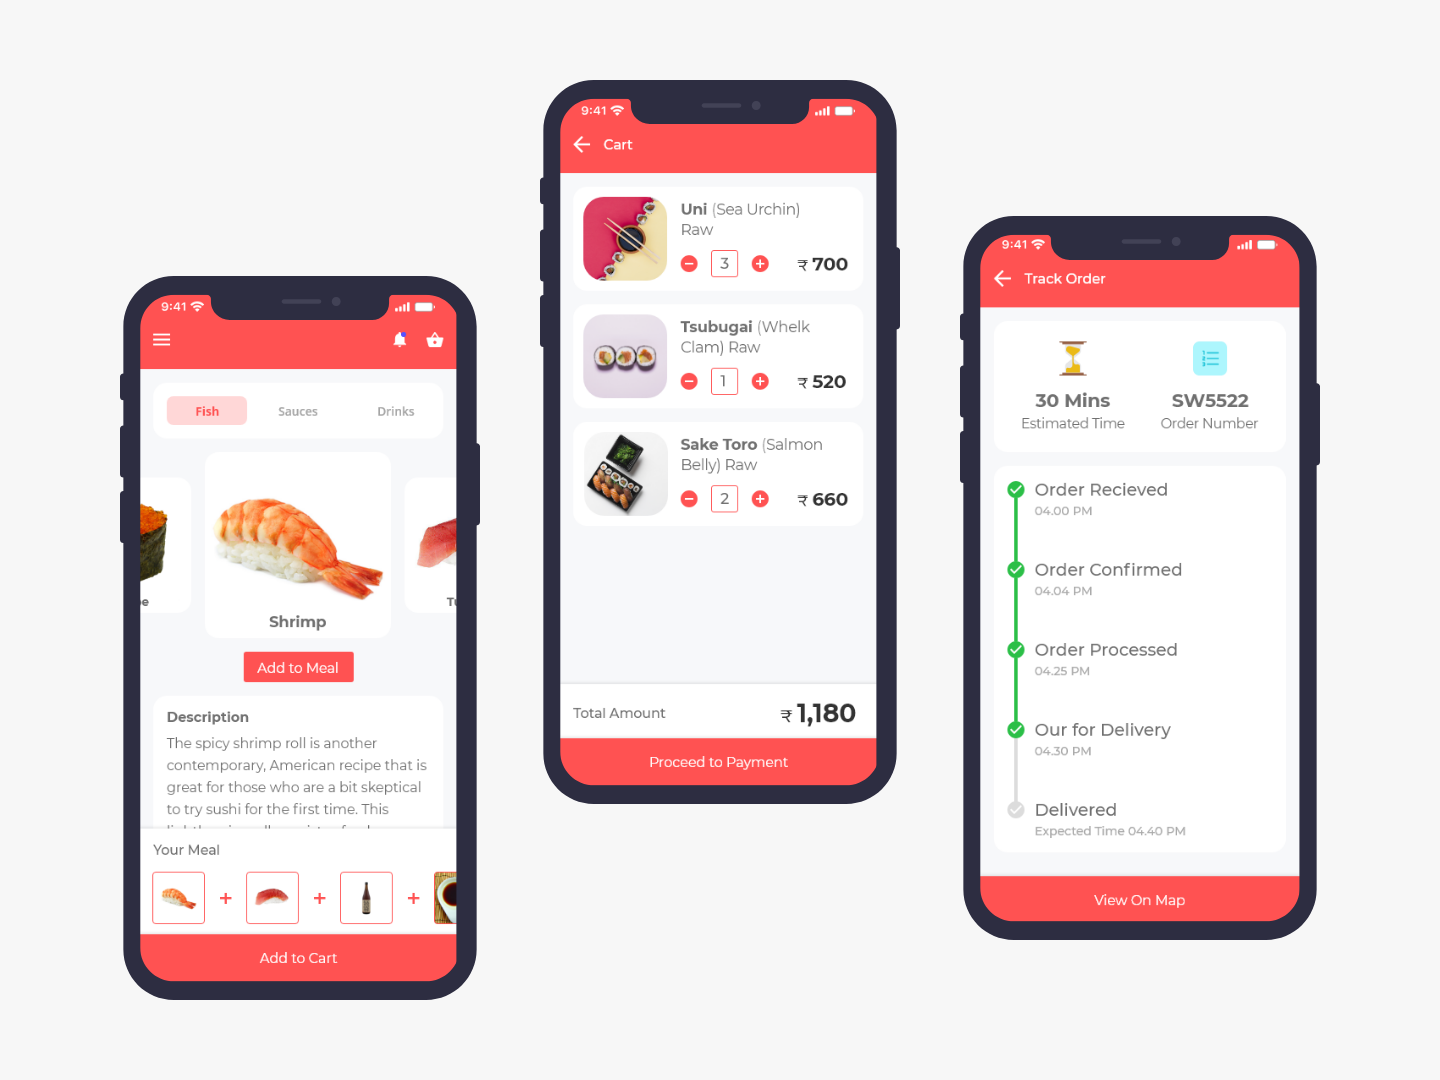 Sushi Ordering User Interface payment process sushi food uplabschallenge uplabs food delivery app online food restaurant app ui restaurant app food app ui delivery service delivery status track order my cart cart product view user interface app app interface sushi restaurant app sushi